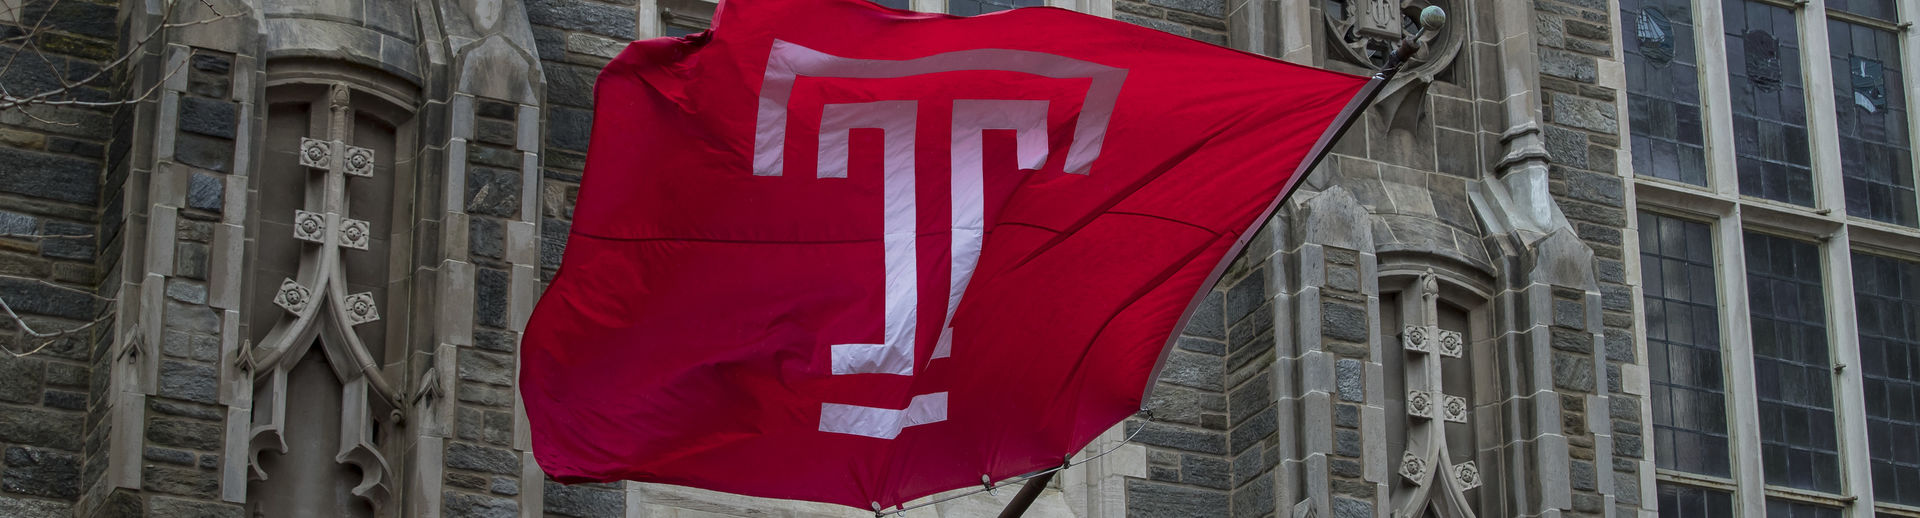 The cherry Temple T flag waves on Main Campus